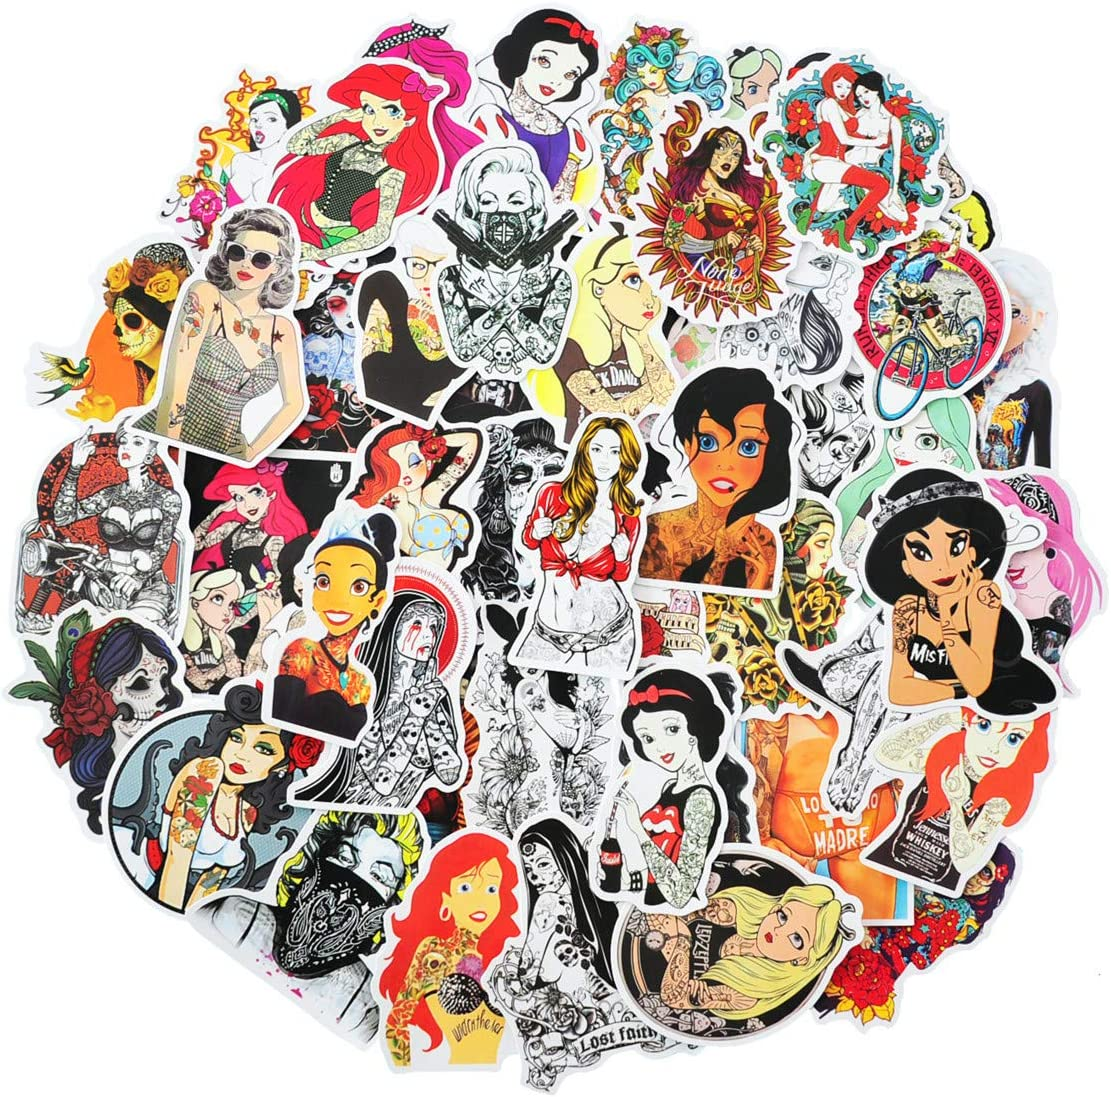 Sexy Stickers Realistic Masked Gangster Adults Tattoos Women Cartoon Princess Beauty Sticker Lady Decals Punk Vintage Retro Stickers for Laptop Luggage Skateboard Car Bumpers (Sexy Tattoos)